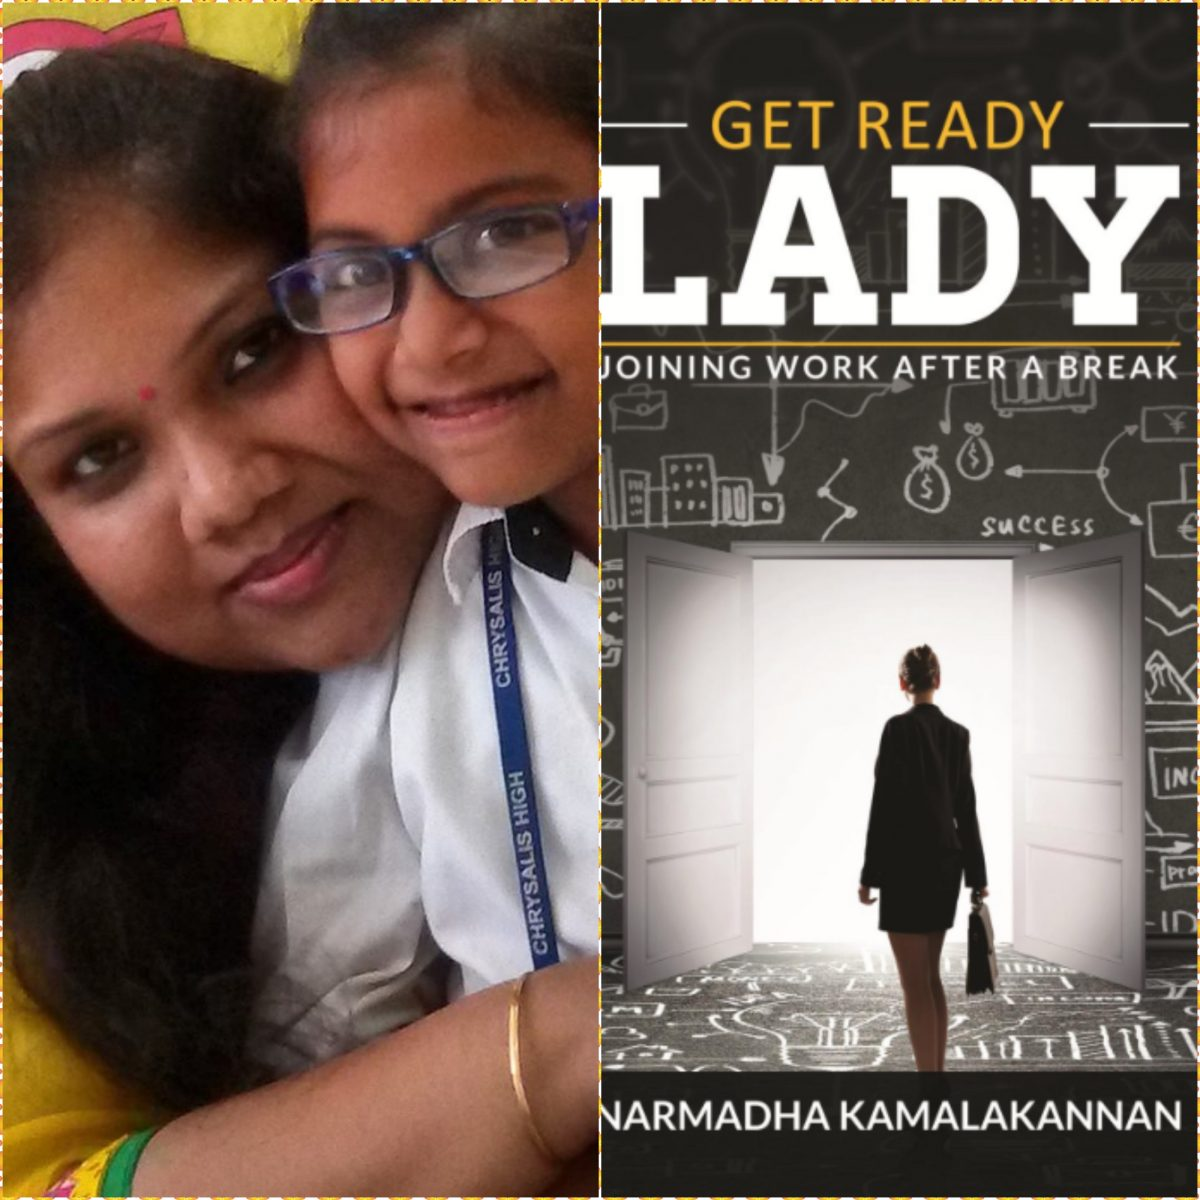 Is this My Story ? Wonders Priyanka in her BOOK REVIEW : GET READY LADY